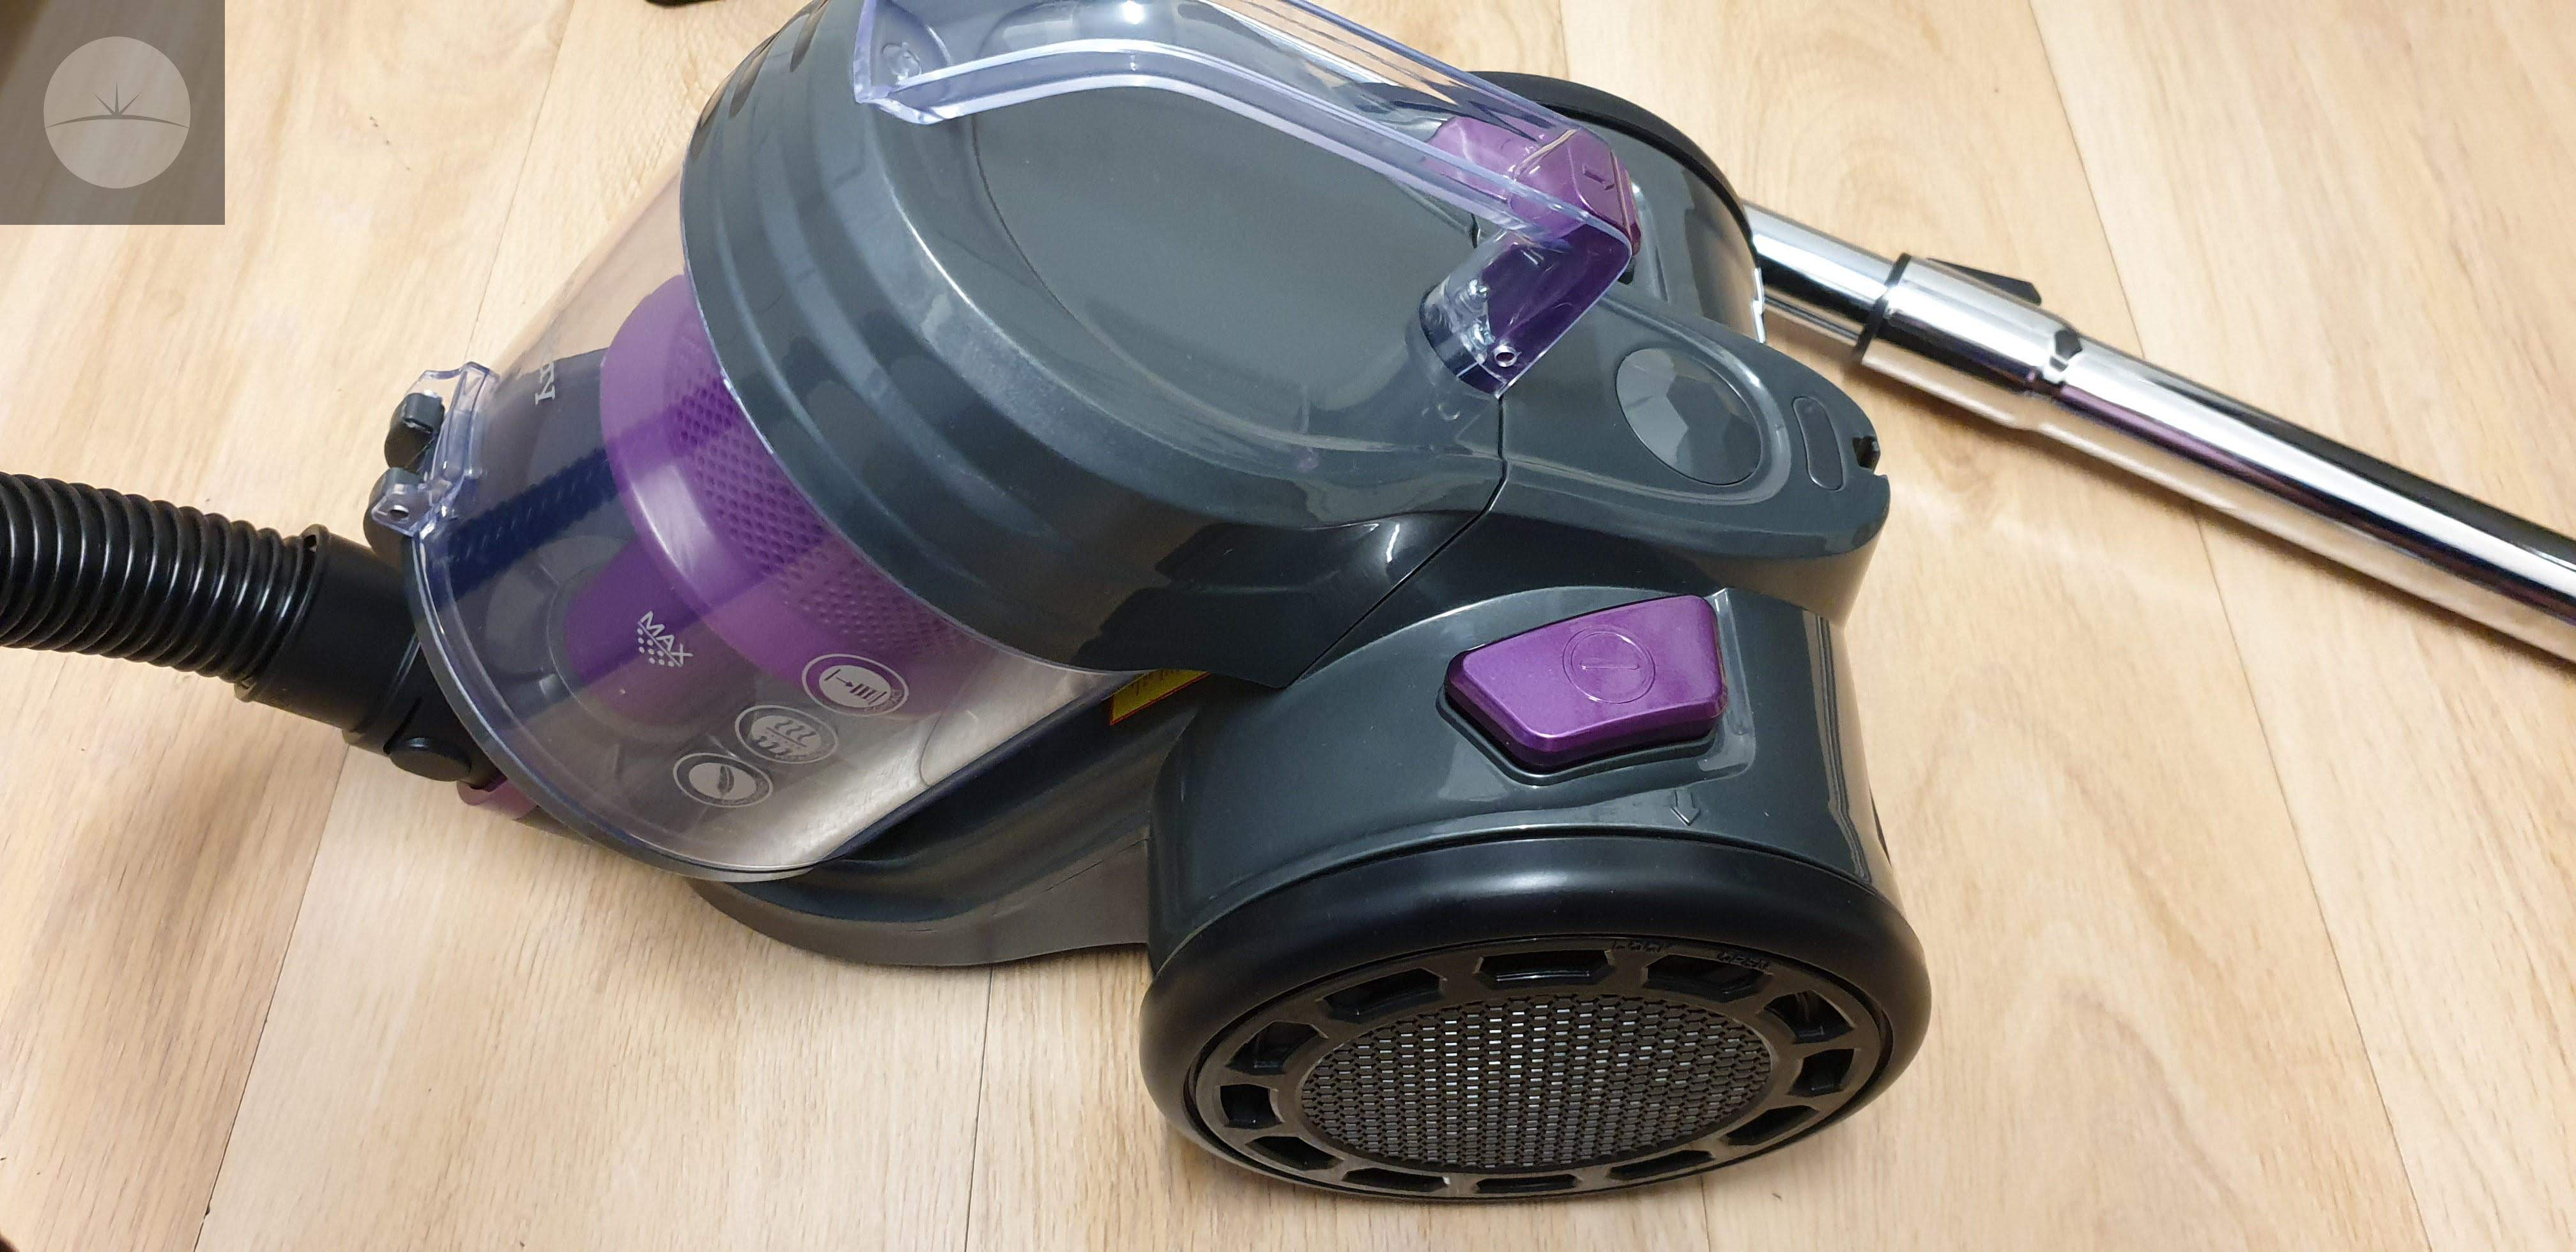 Beldray Compact Vac Lite Cylinder Vacuum Cleaner Review